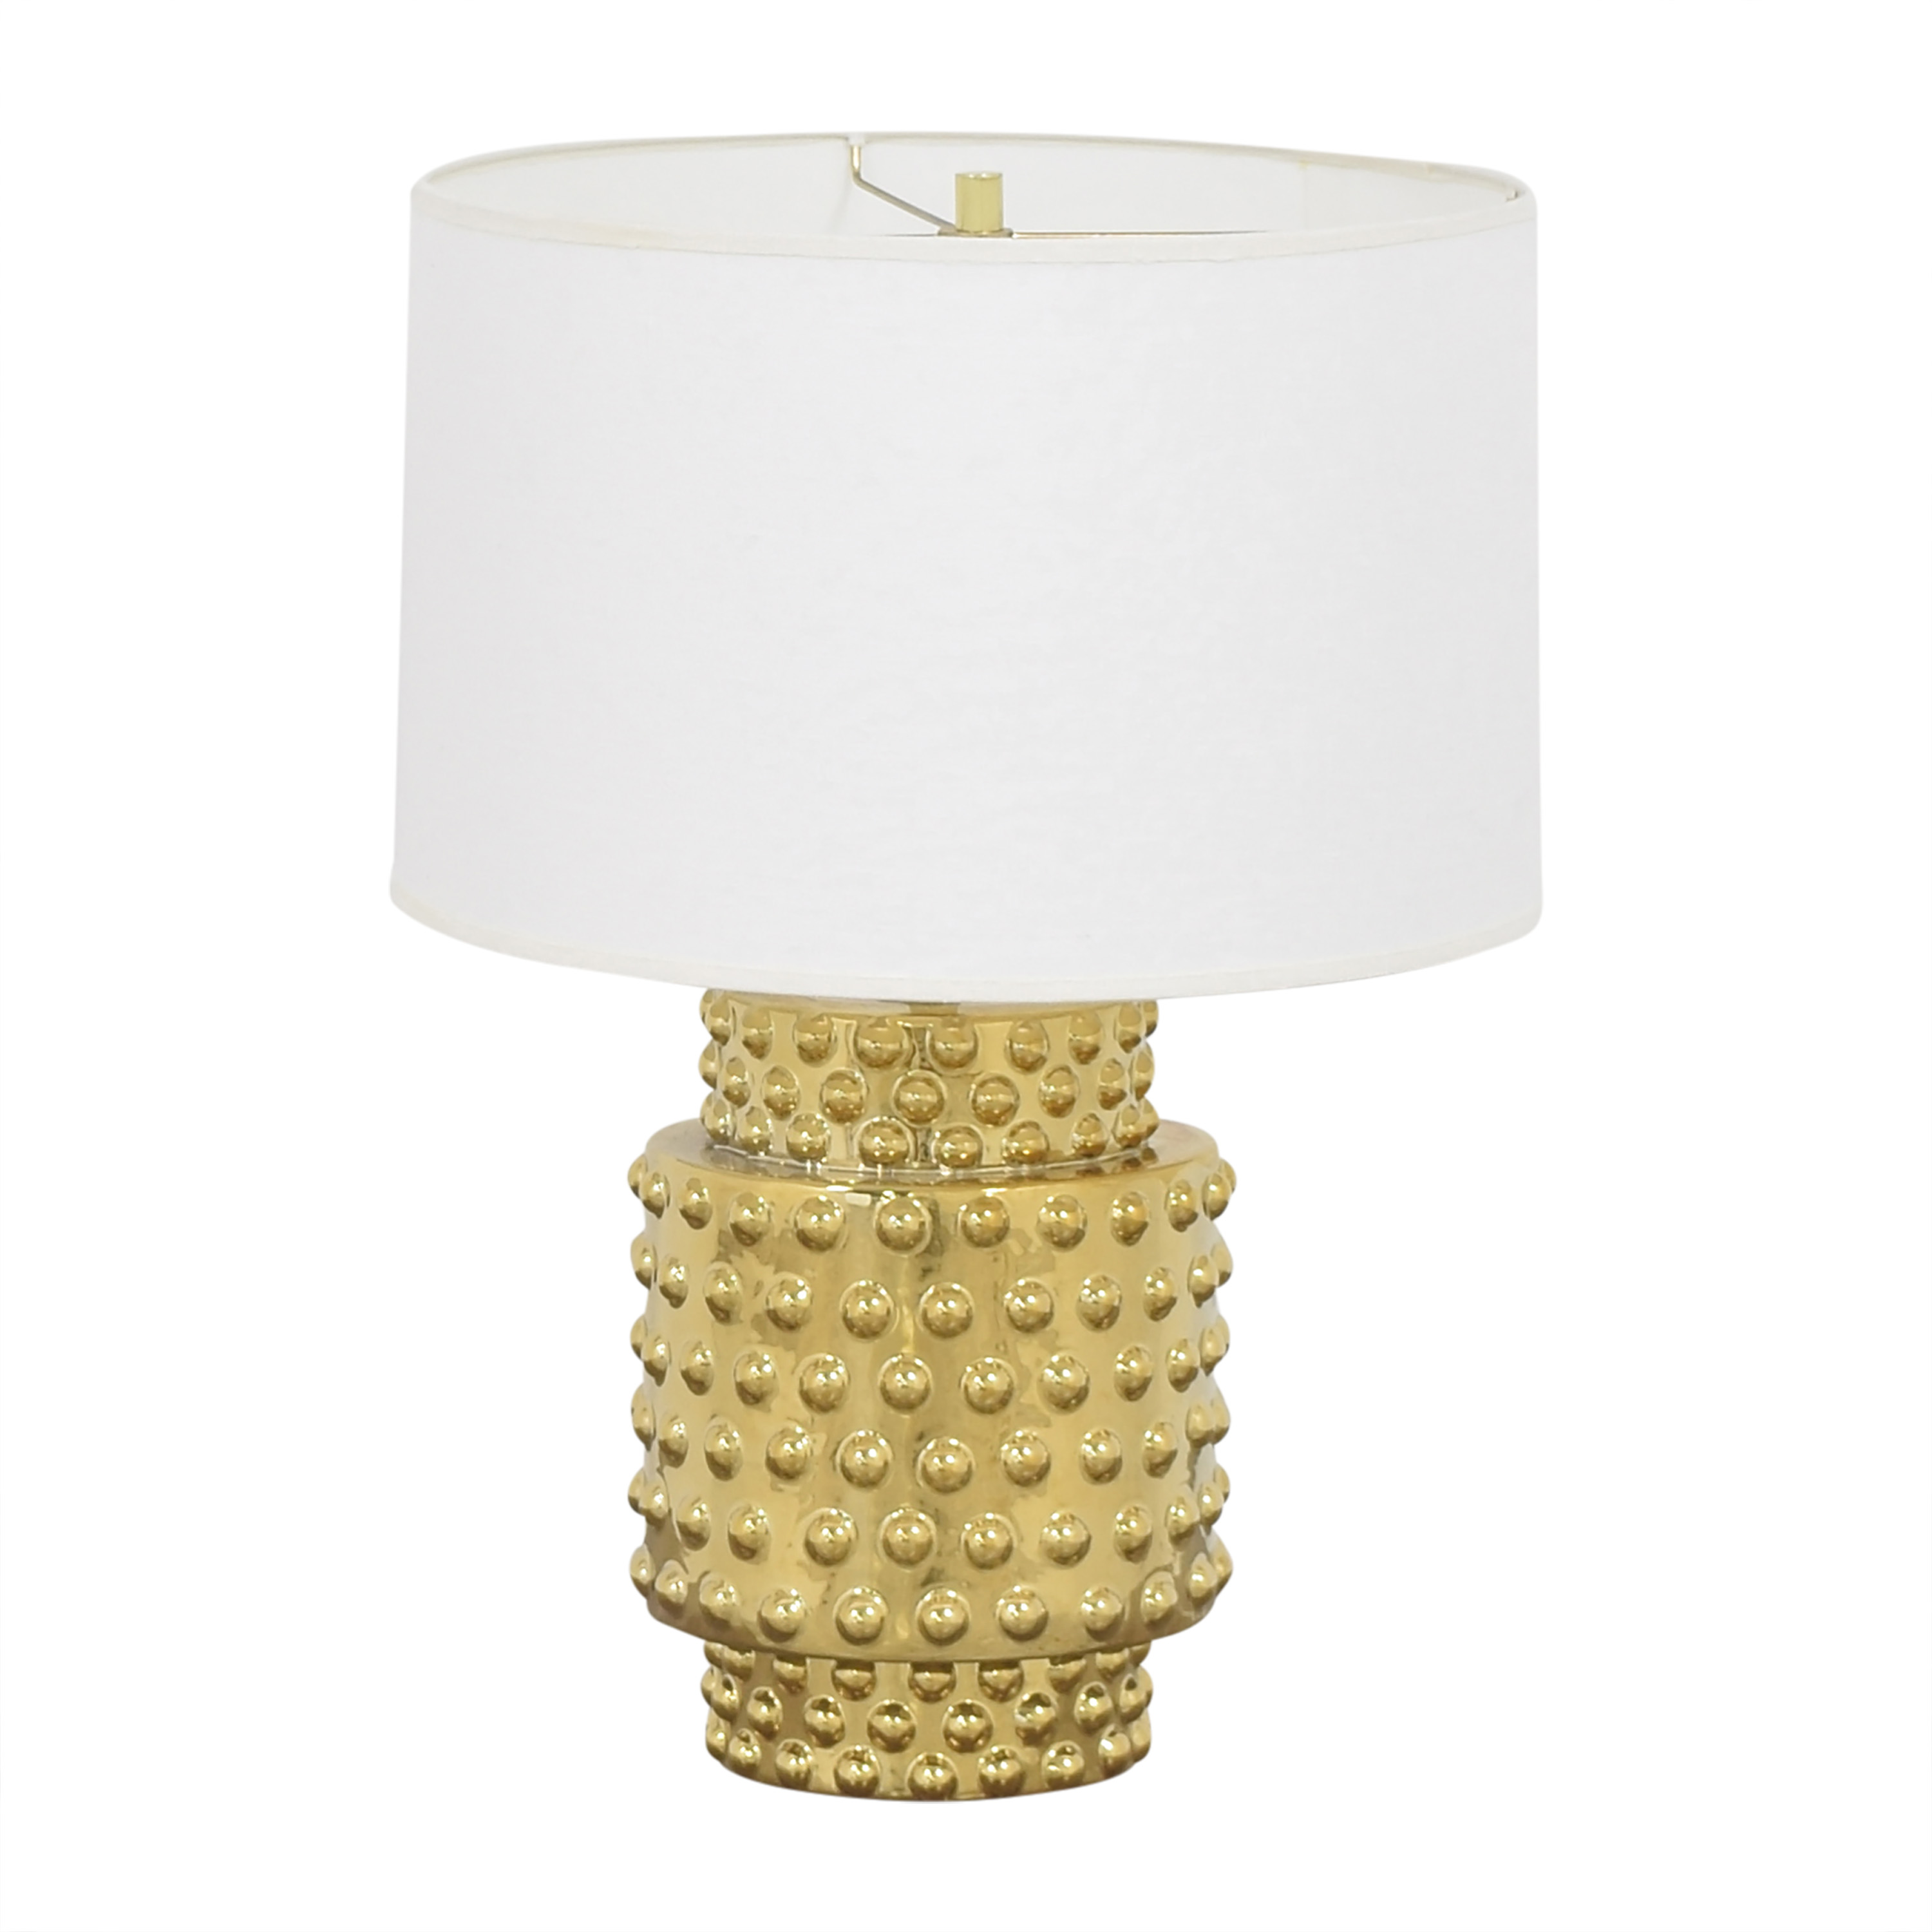 Serena & Lily Serena & Lily Tinsley Table Lamp for sale